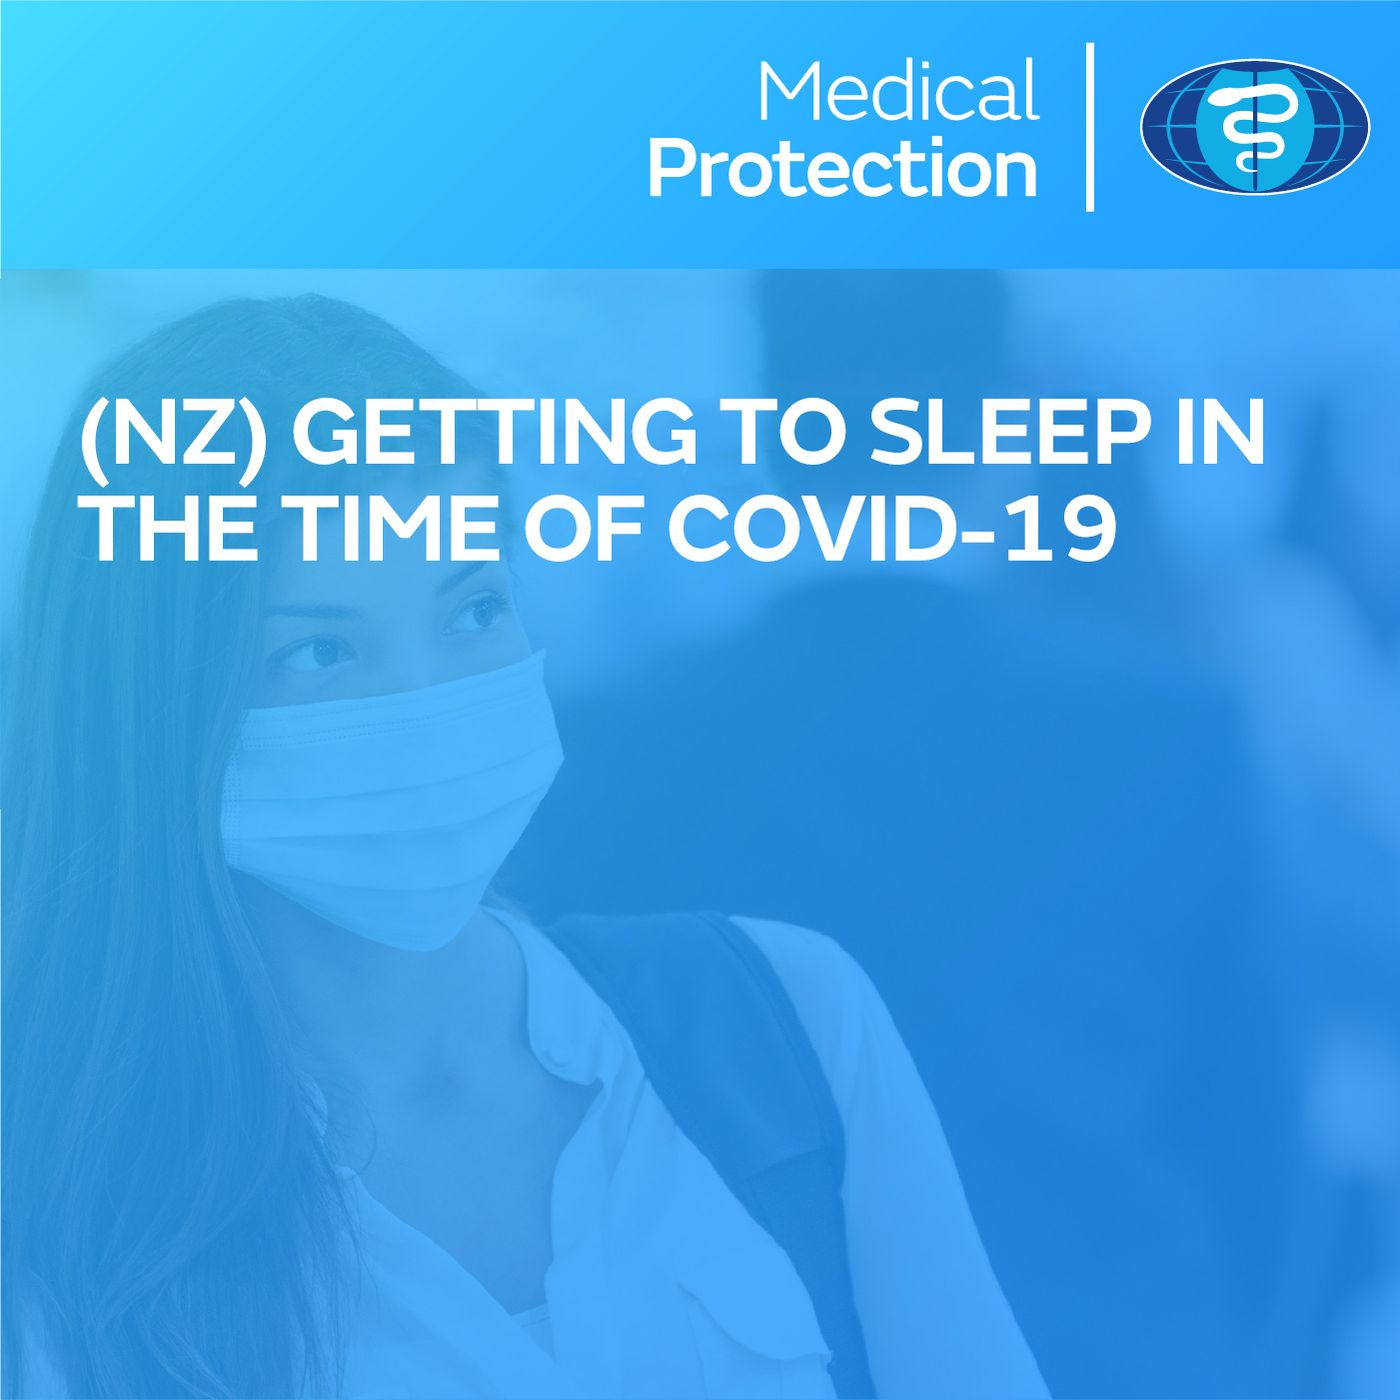 [NZ] Getting to sleep in the time of COVID-19